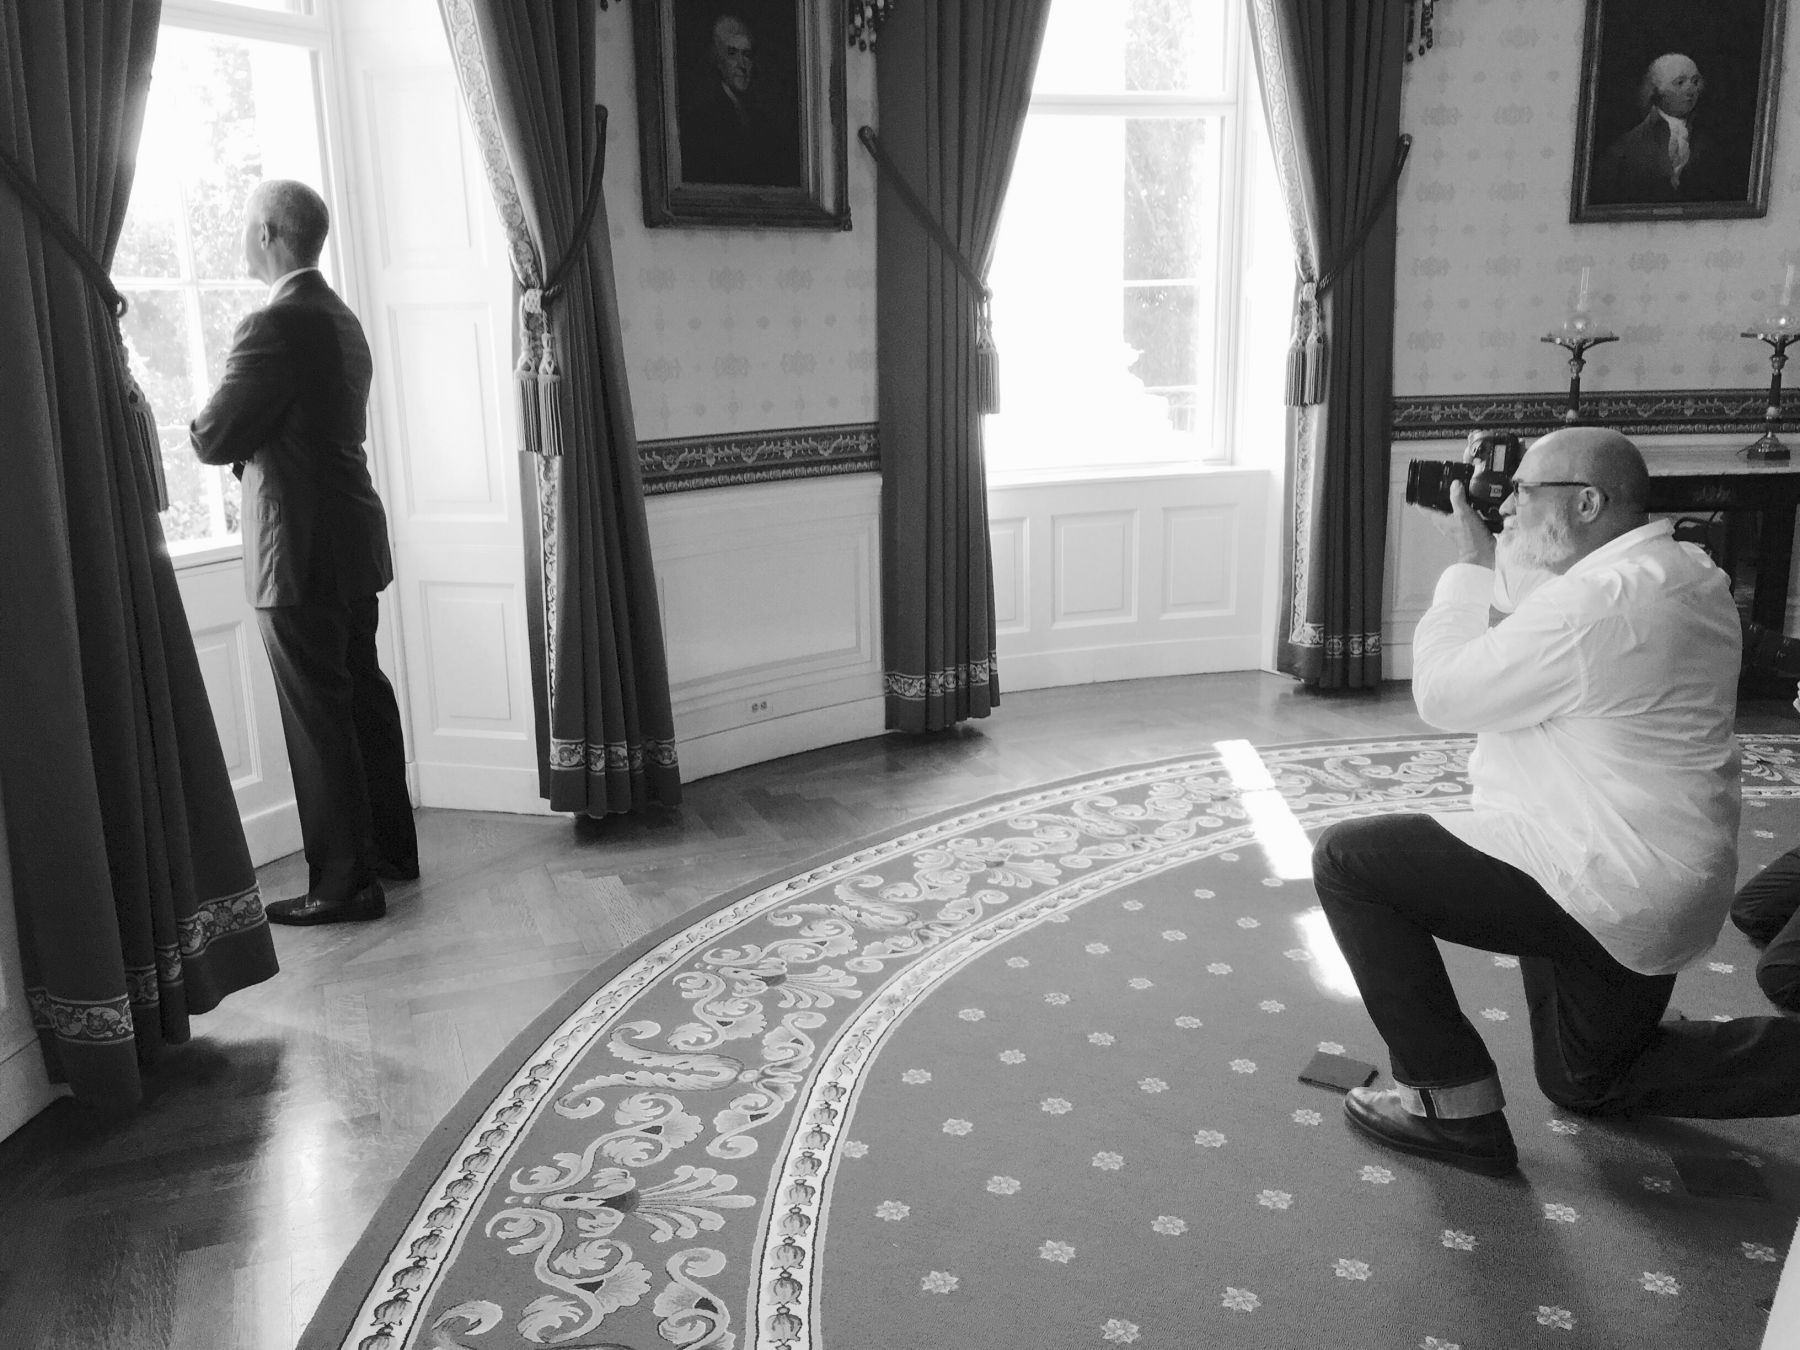 BTS Dan Winters photographing Barack Obama, 2016